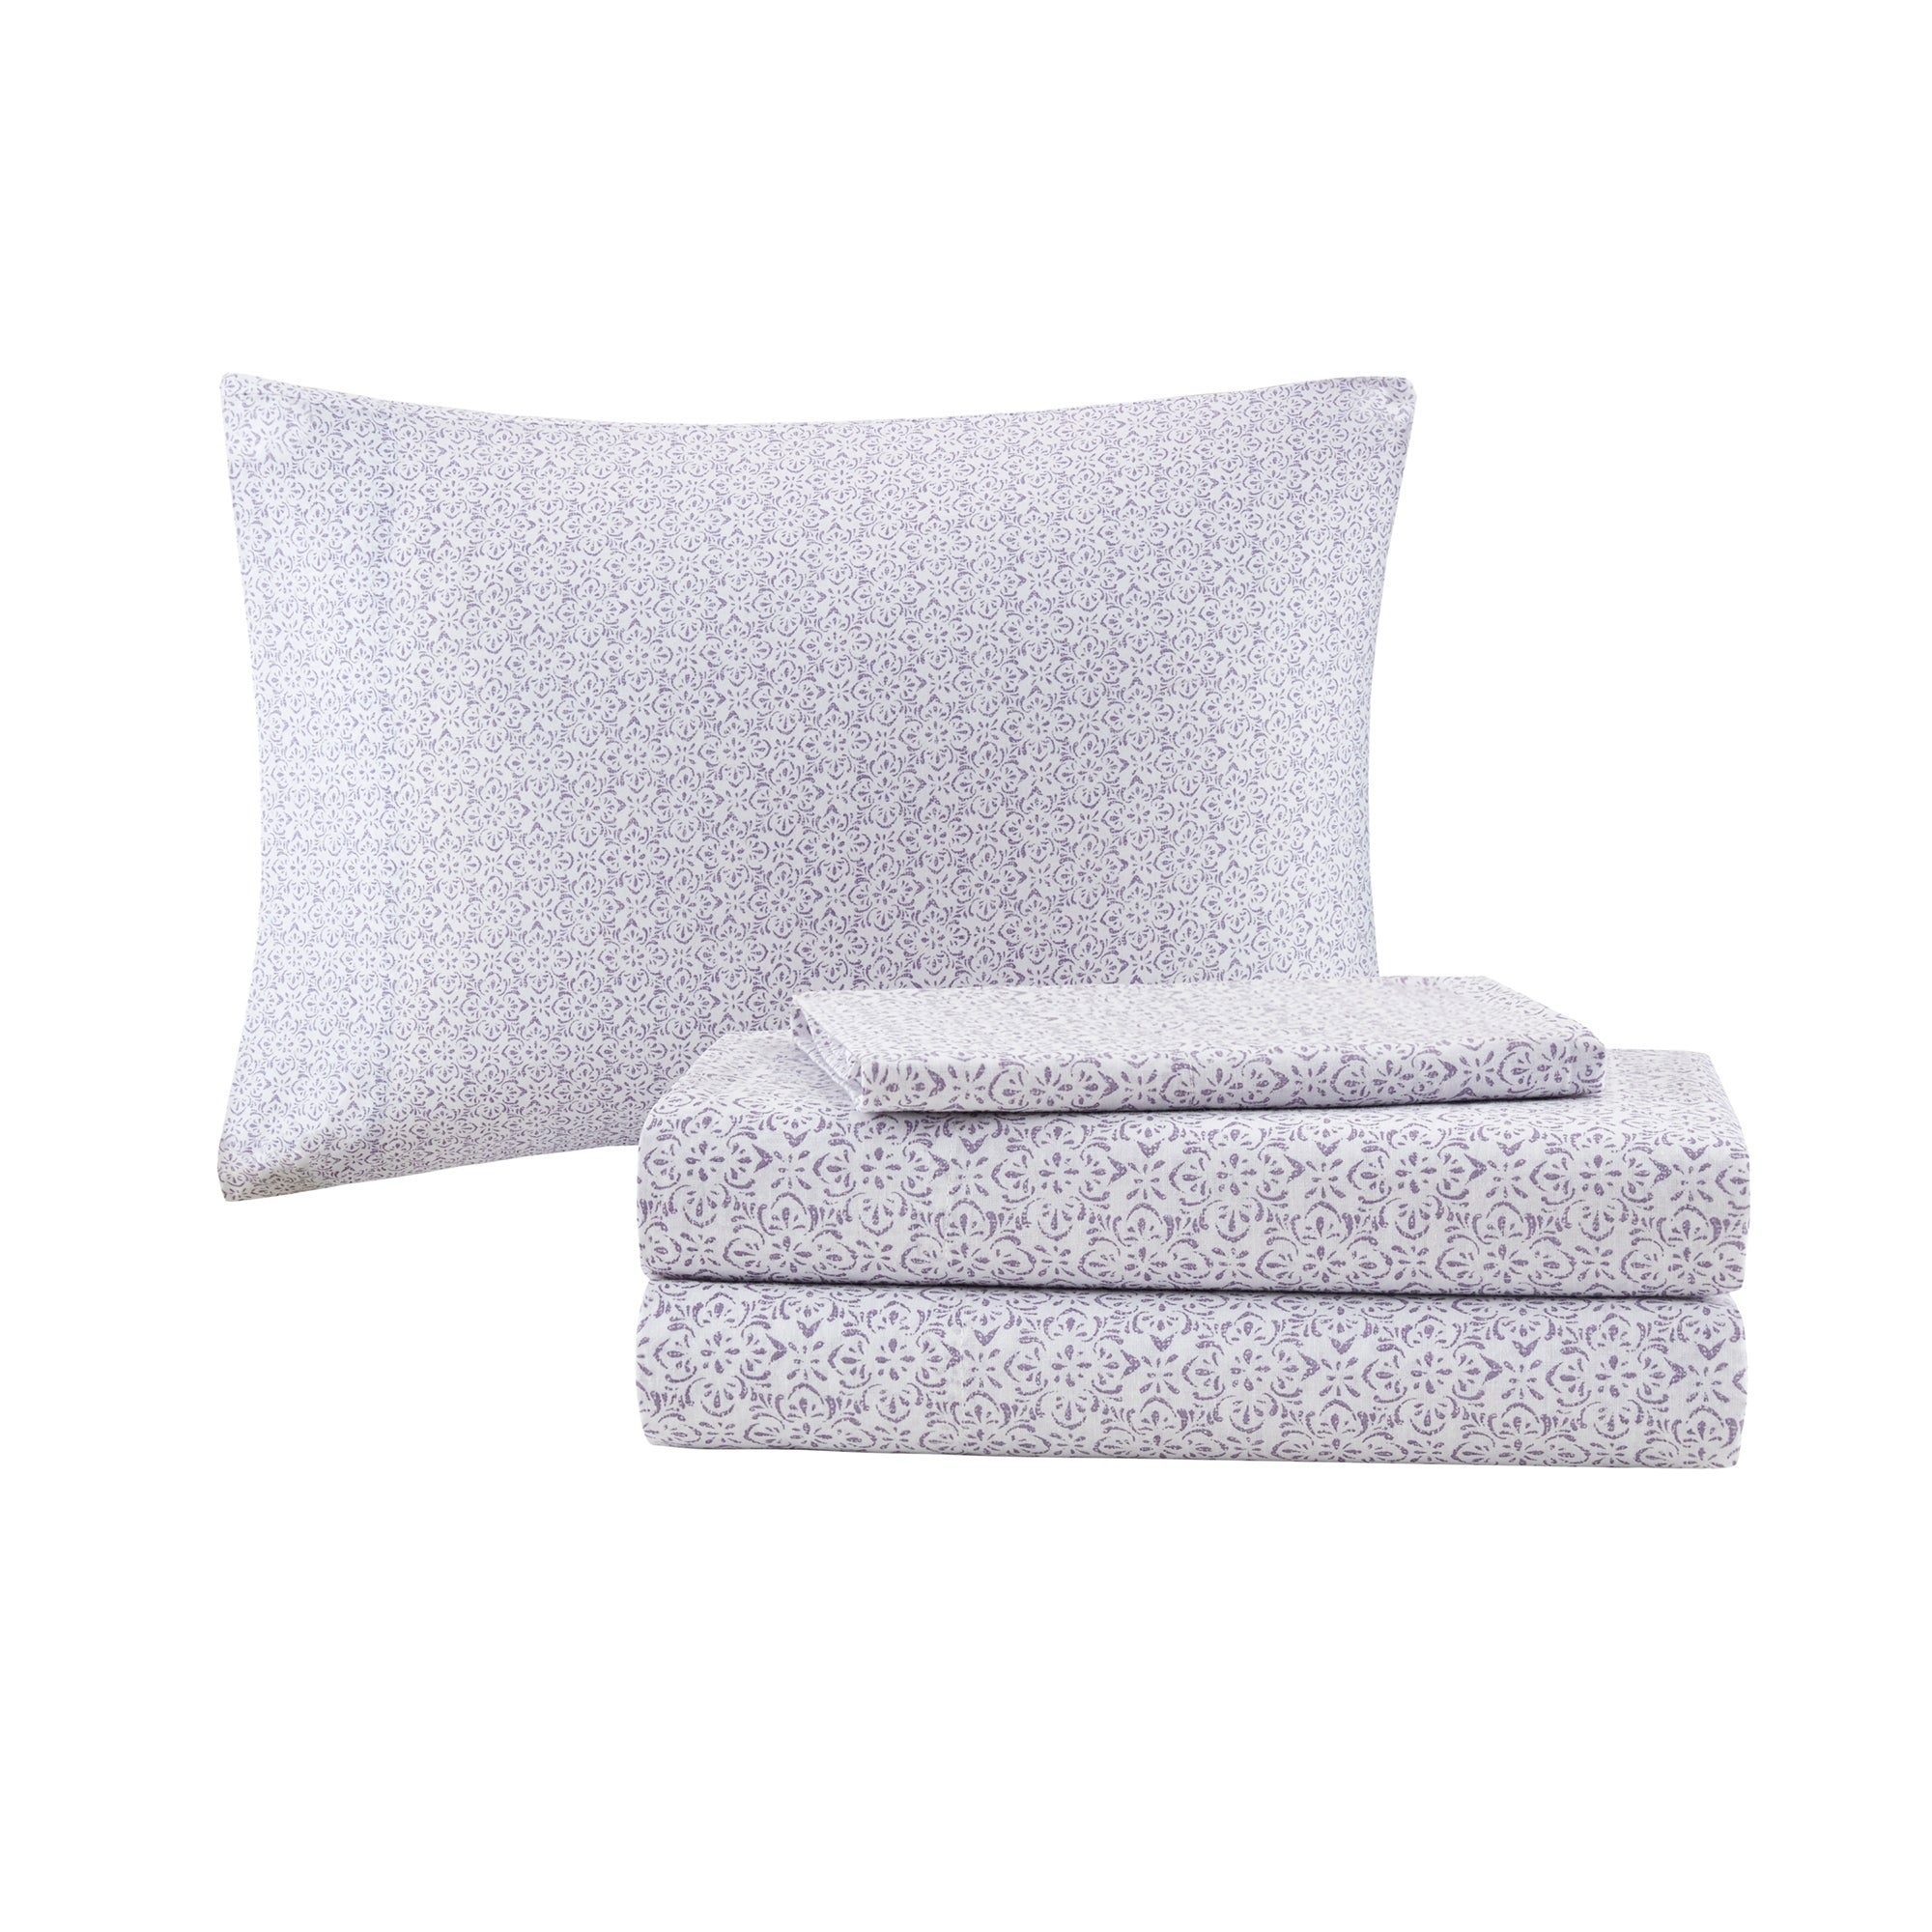 93b21f2e8ab2 Shop Madison Park Essentials Cristal Purple Complete Bed Set Including  Cotton Sheets - On Sale - Free Shipping Today - Overstock - 22506140